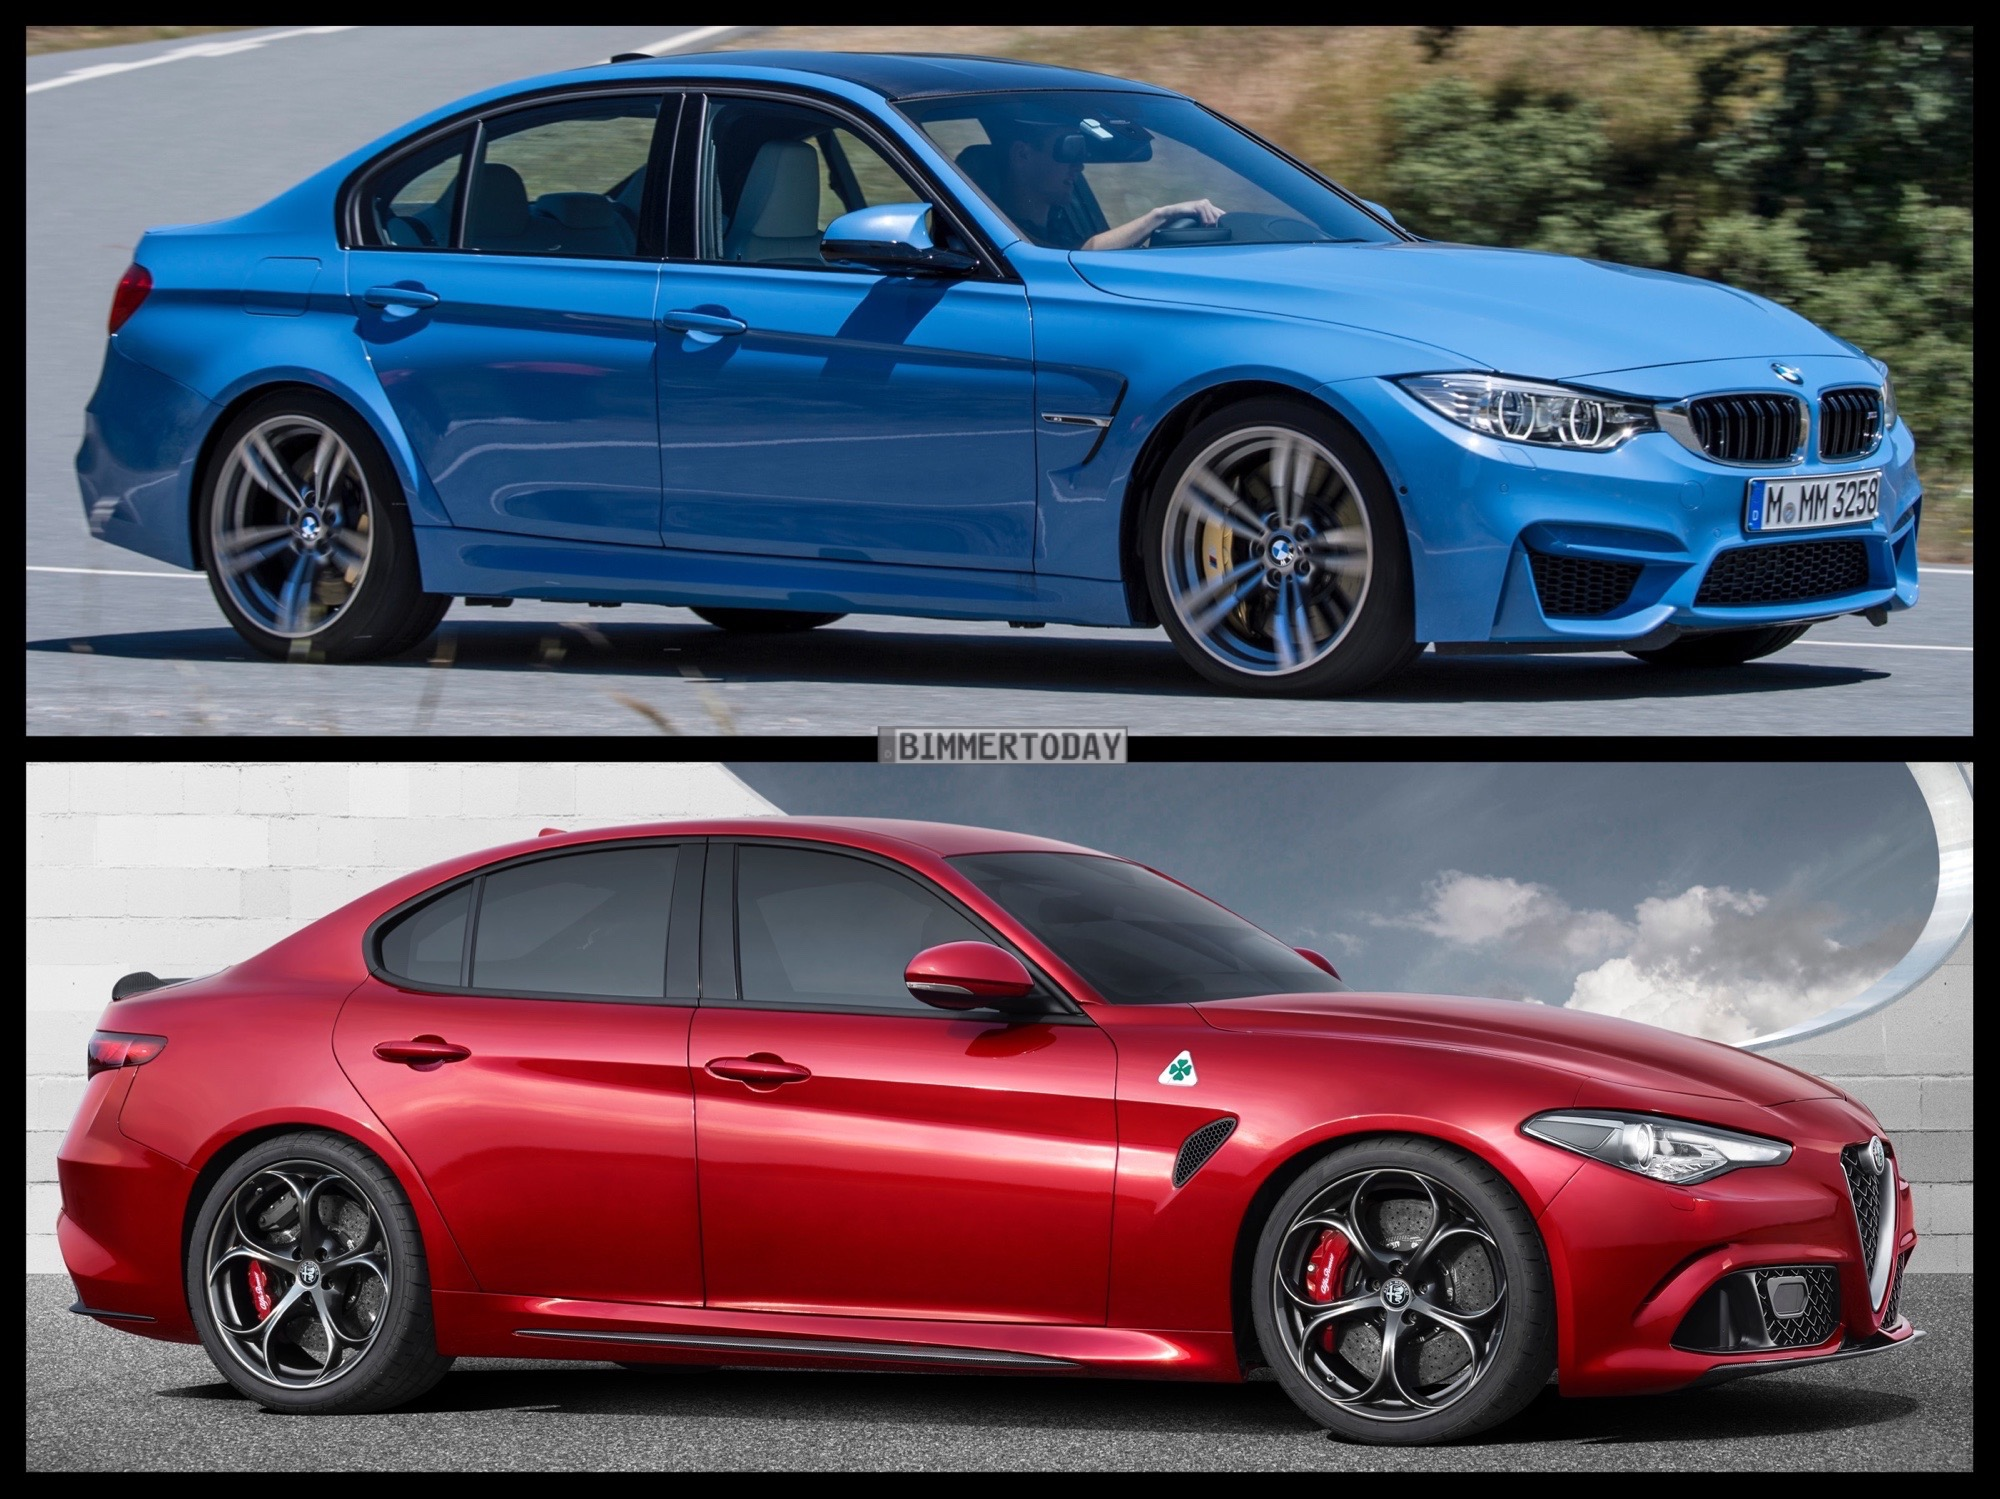 2017 Bmw Z4 Series Price >> Alfa Romeo Giulia QV vs BMW M3: The rematch?